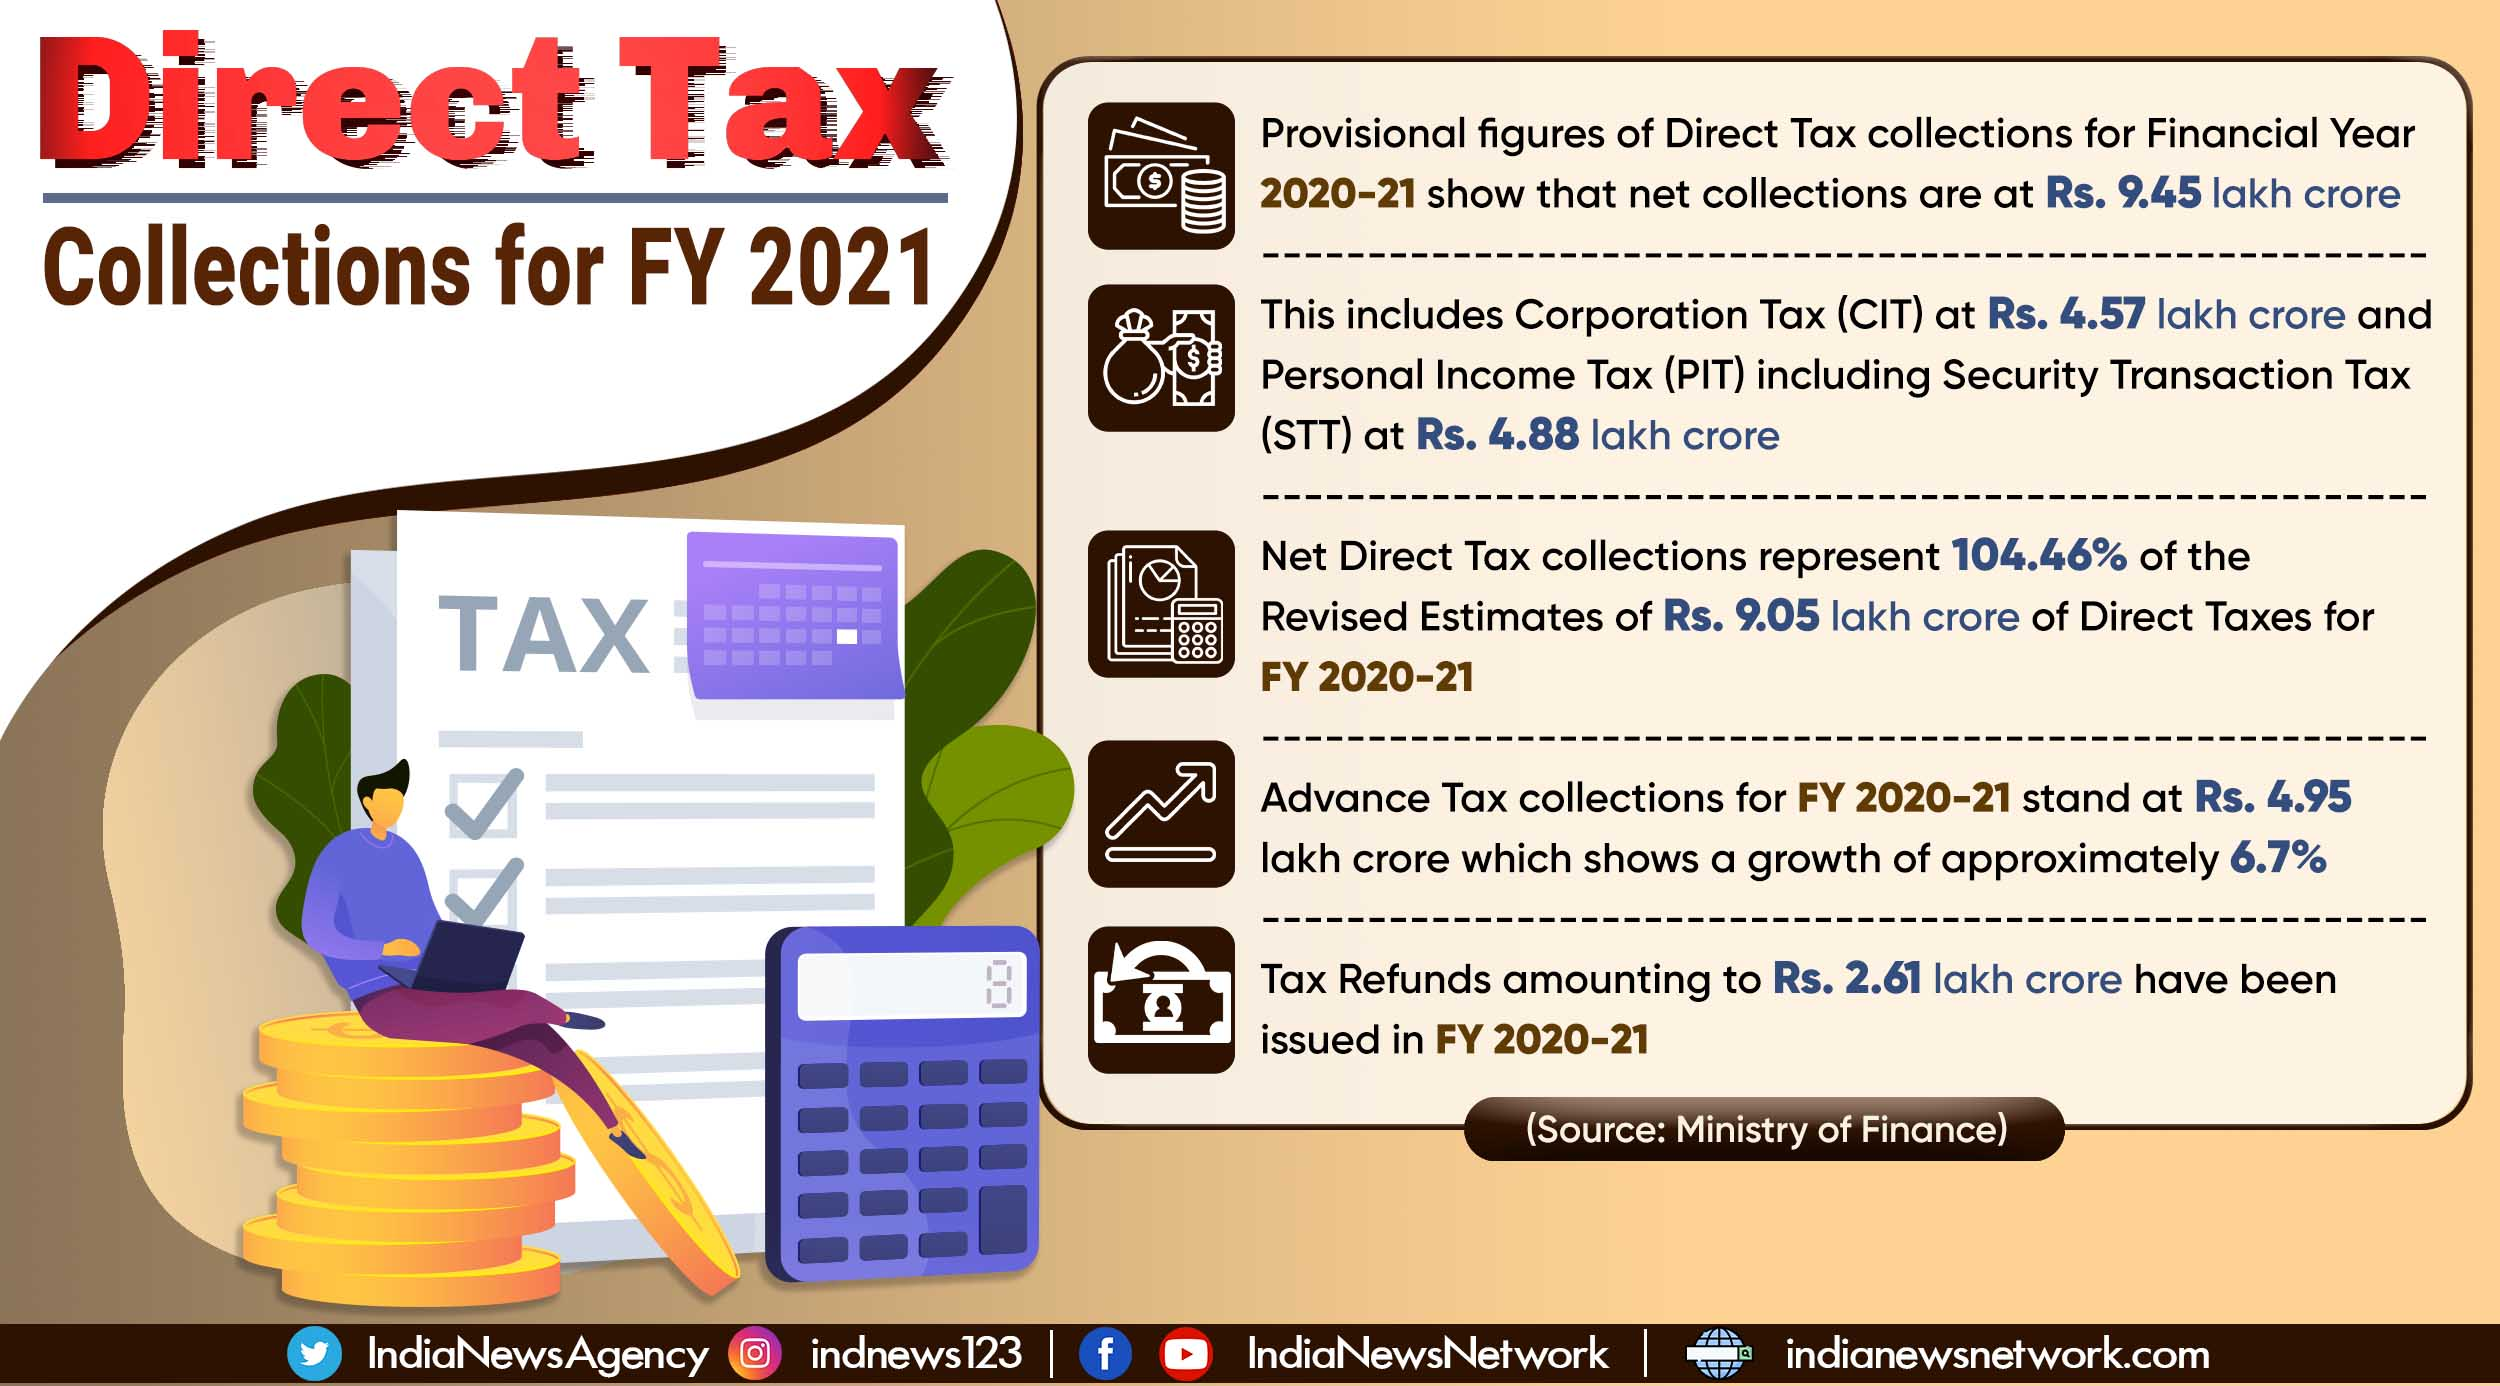 Provisional Direct Tax collections for FY 2020-21 show growth of almost 5%